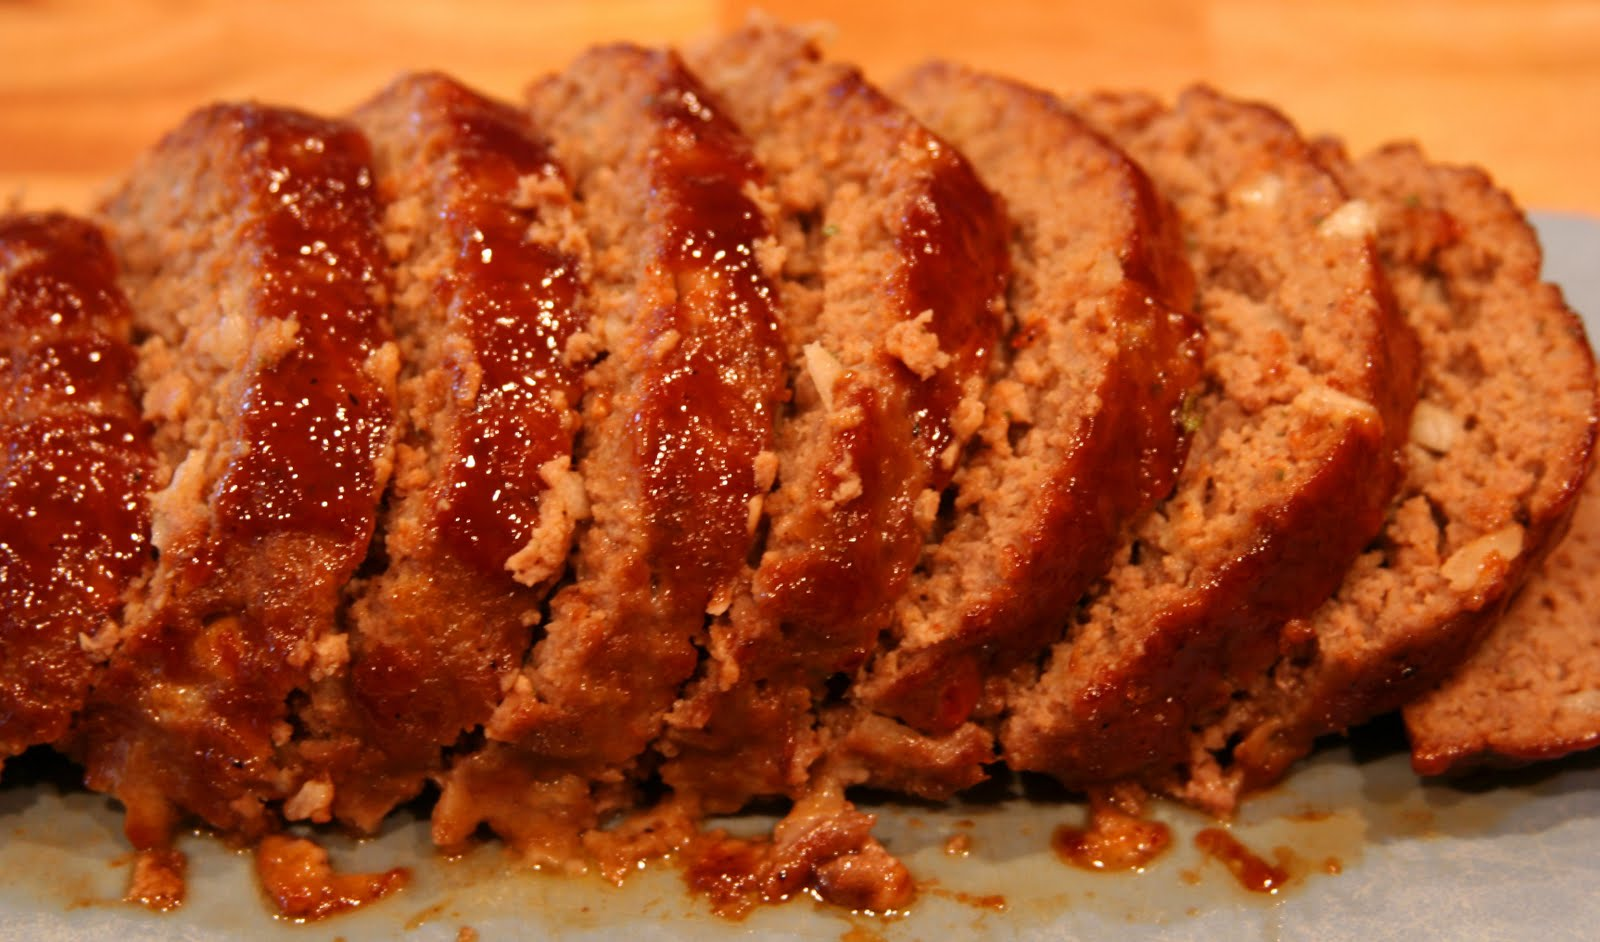 Weight Watchers Recipies: Mom's Meat Loaf - 5 points